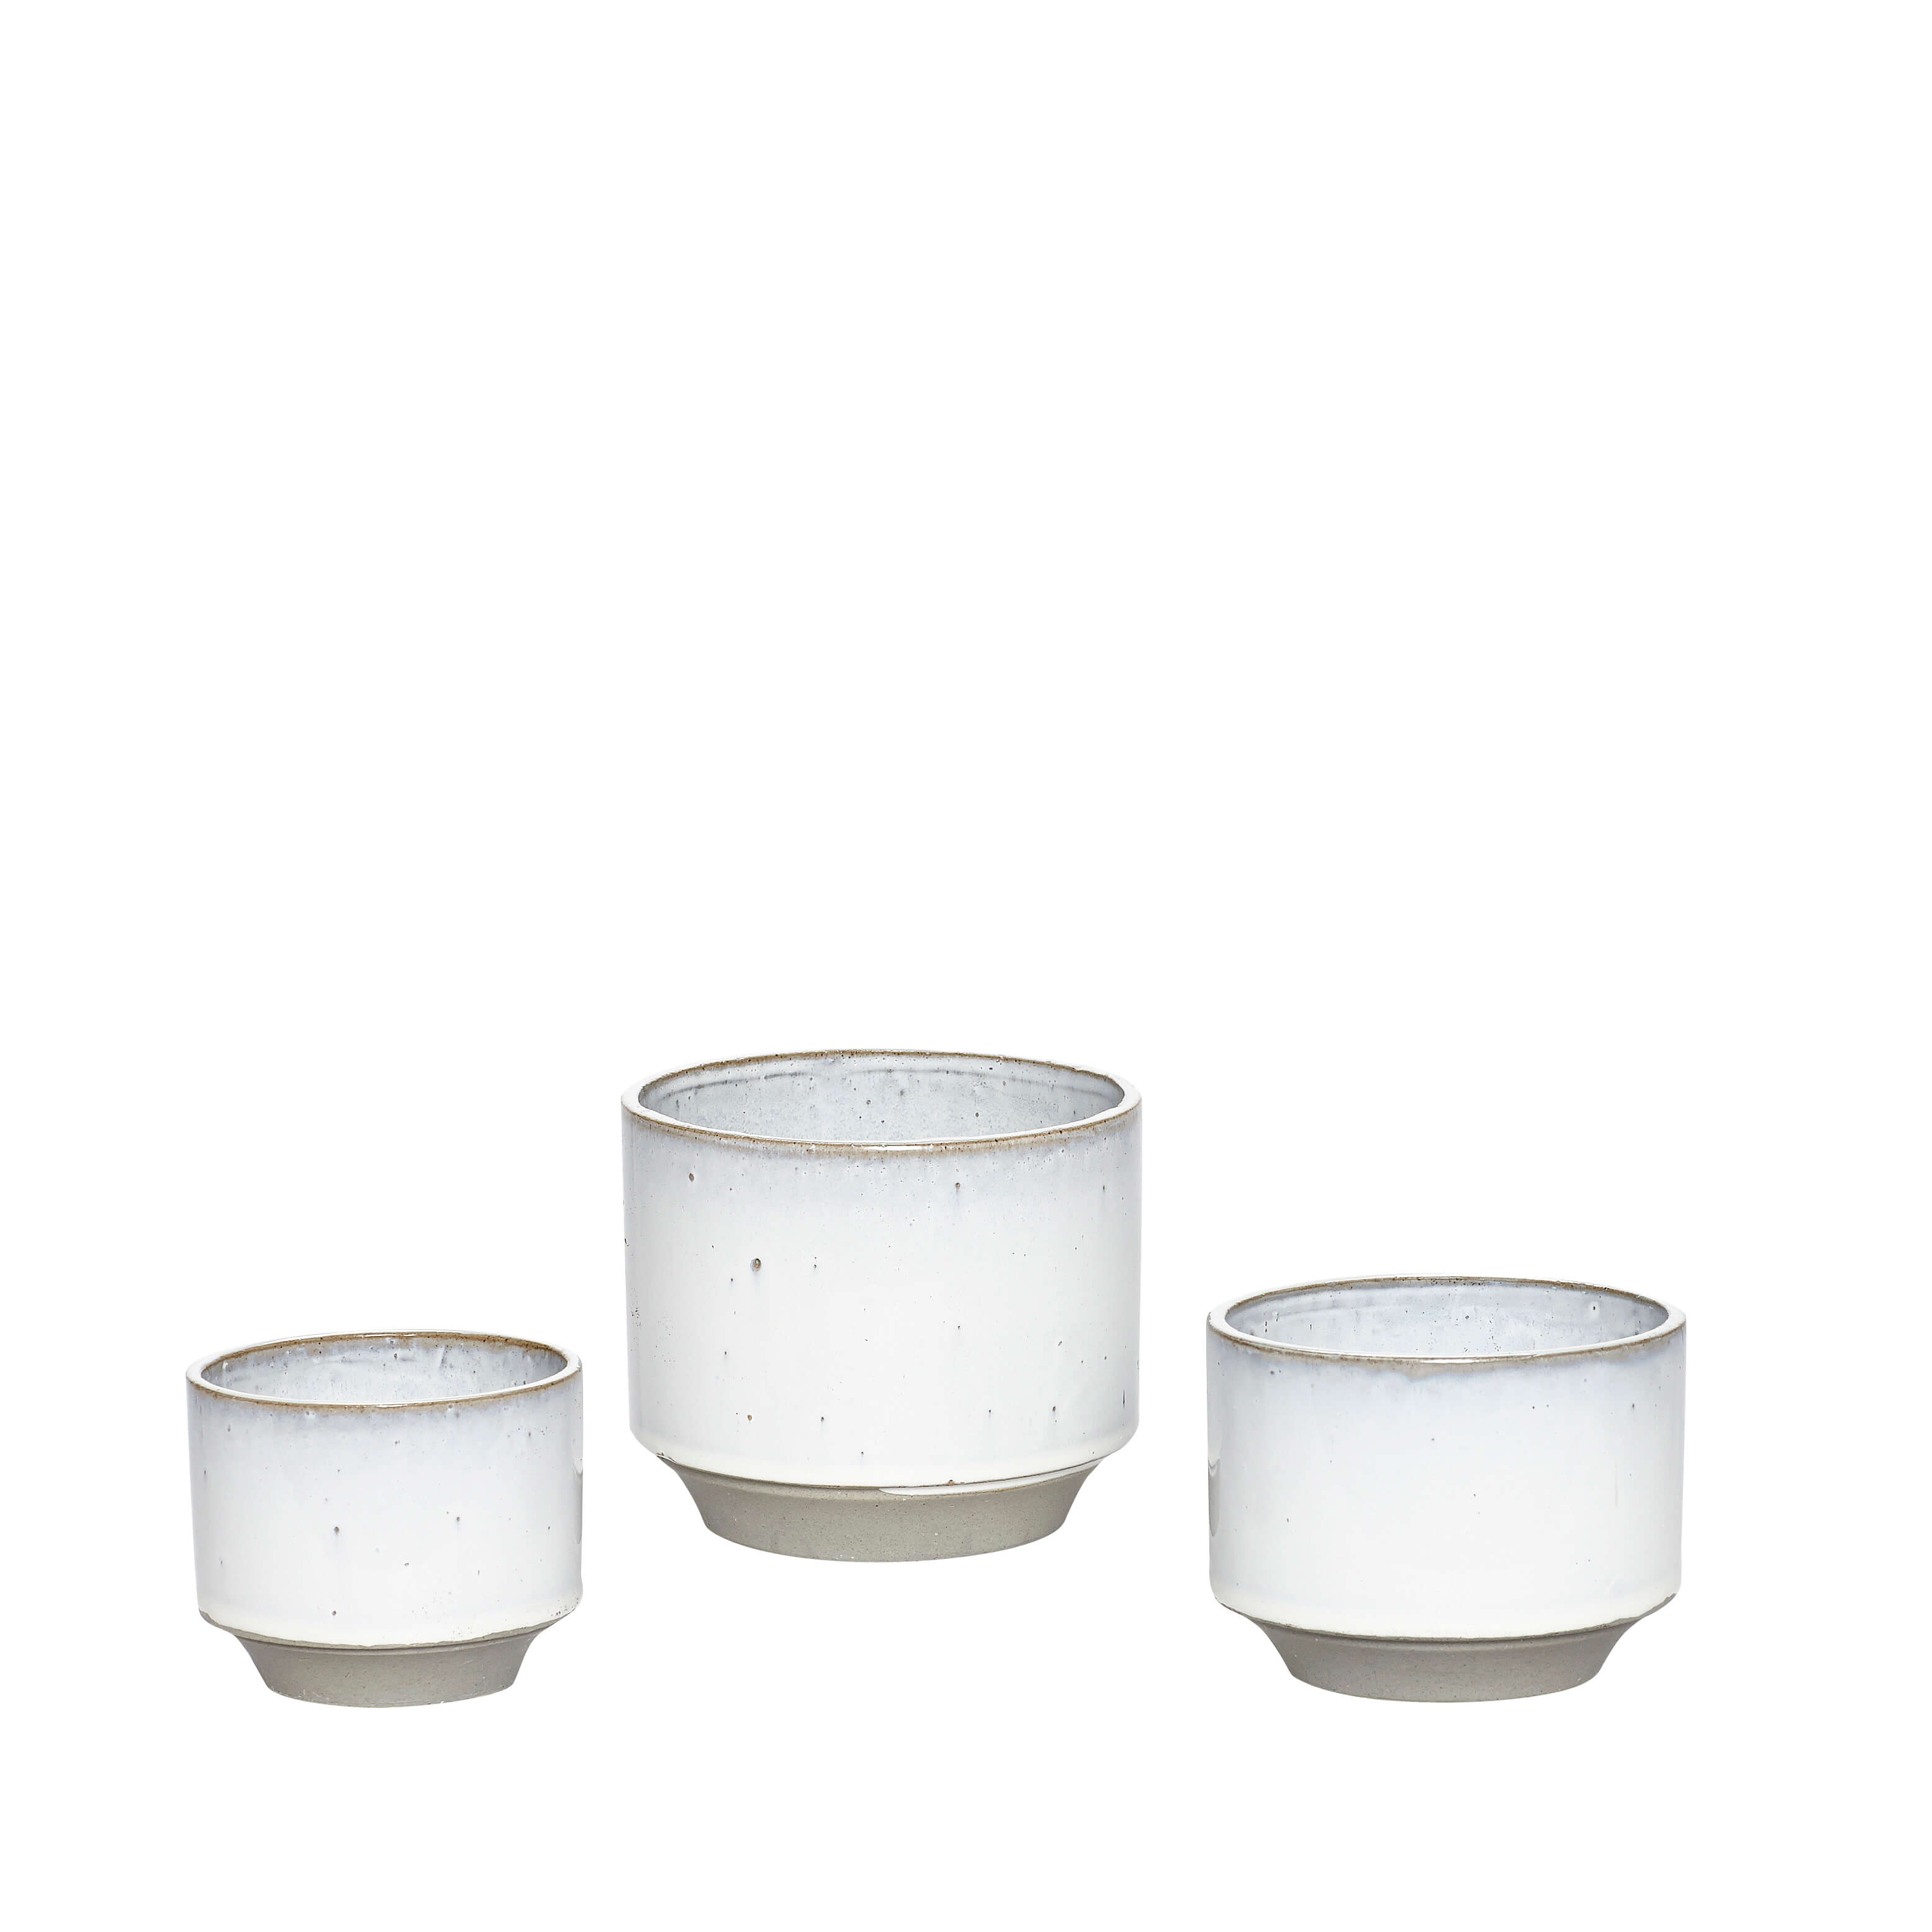 Hubsch Ceramic Pots Light Grey – set of 3